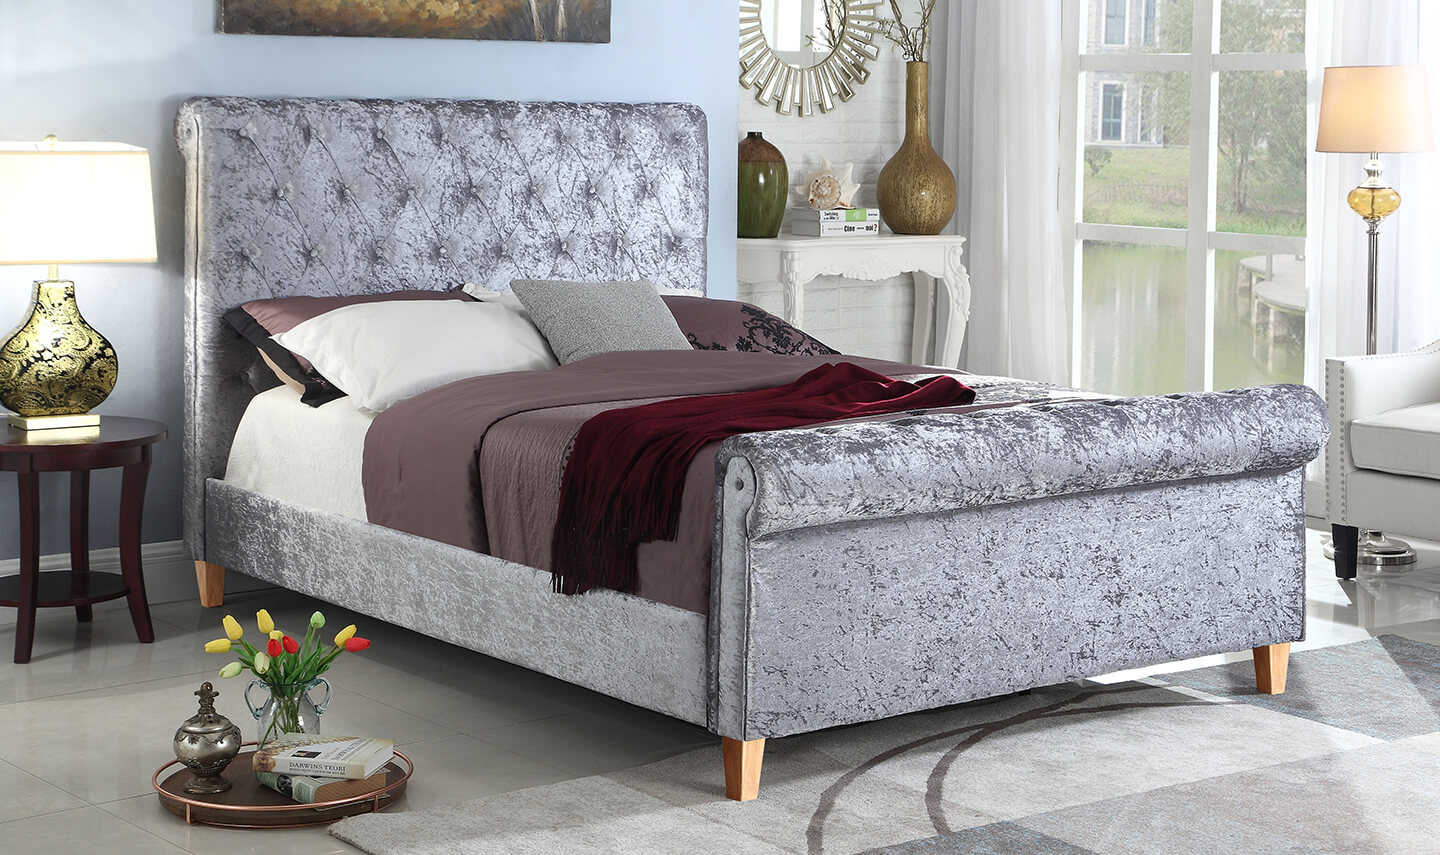 4ft 6 Bed 4ft6 Double Crushed Velvet Sleigh Bed Grey